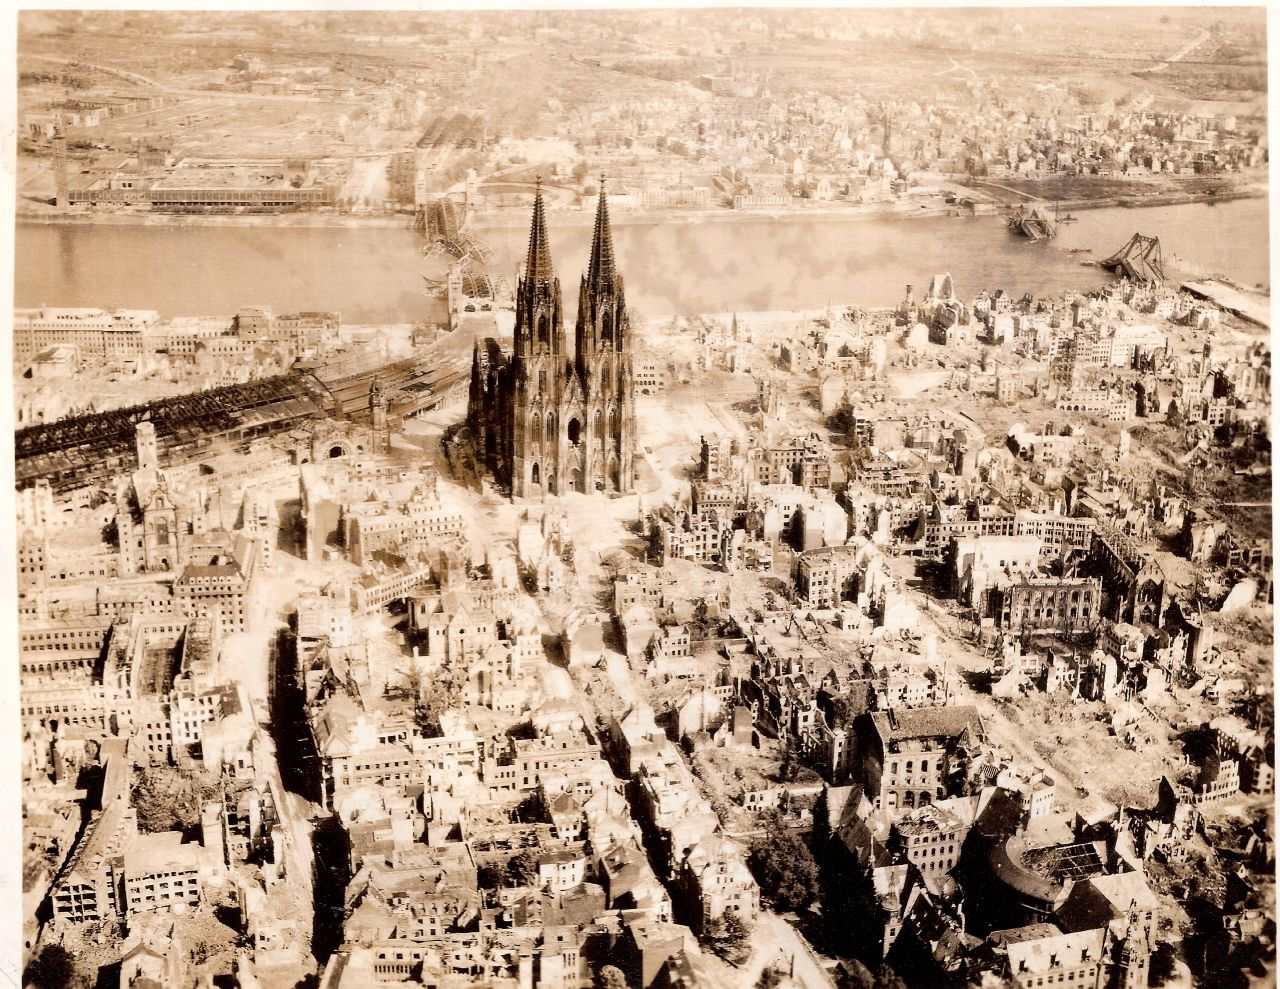 The Dom Cathedral (Kölner Dom) in Cologne, Germany WWII, May 10th, 1945.